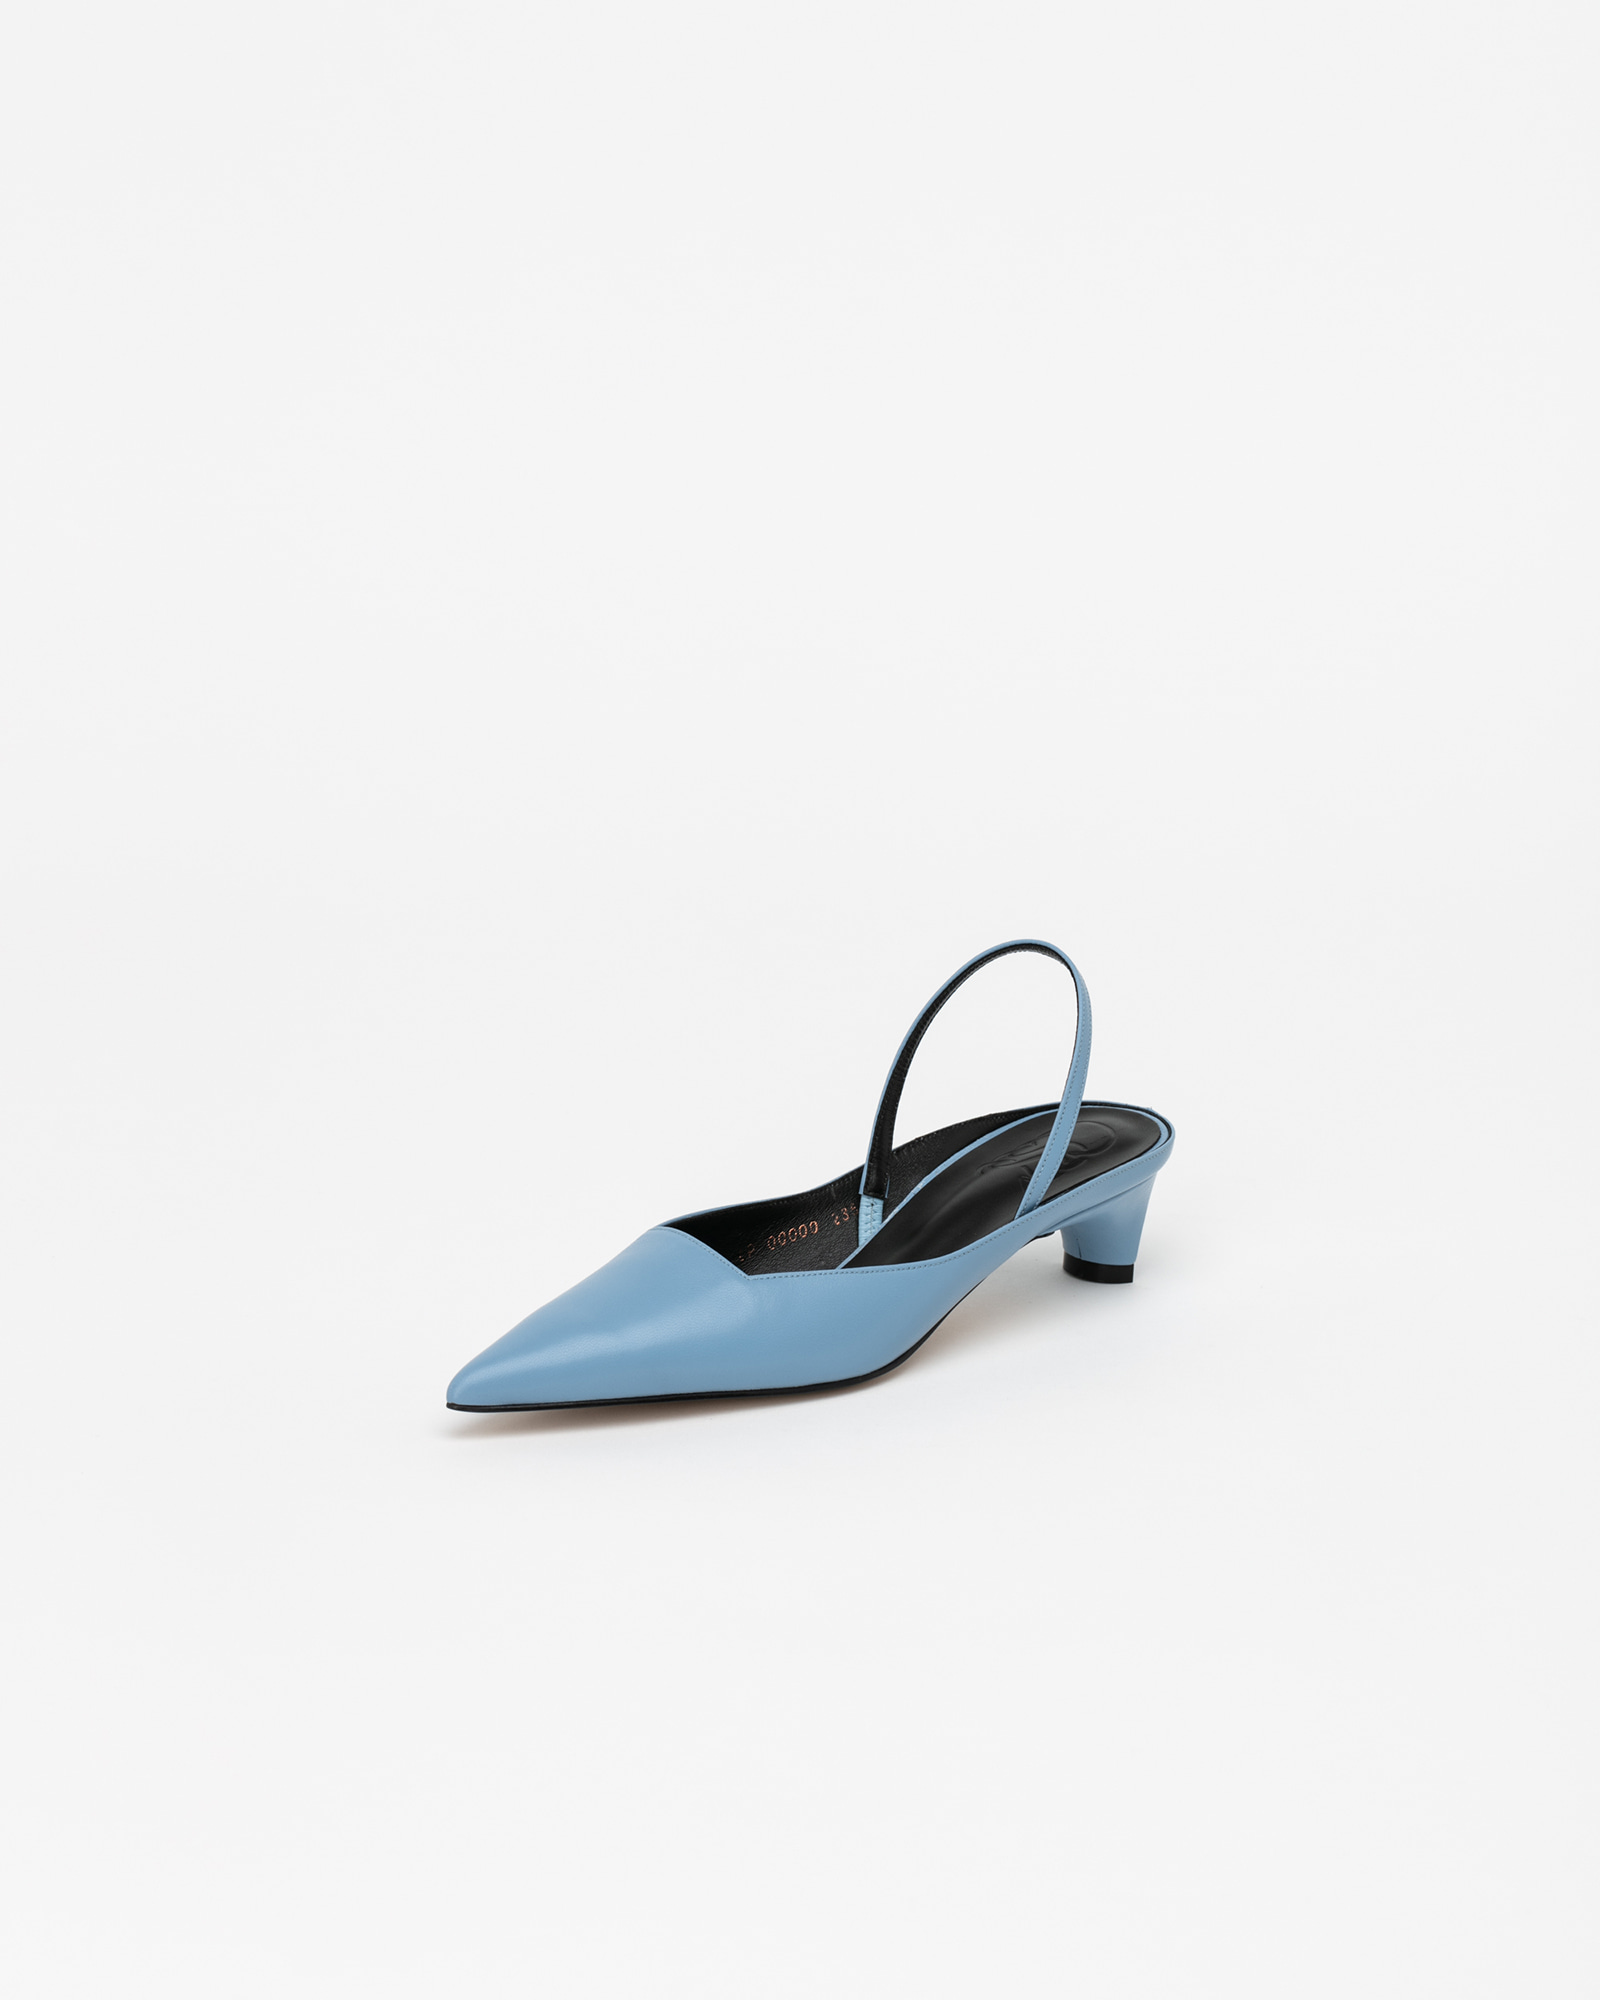 Contana Slingbacks in Airy Blue